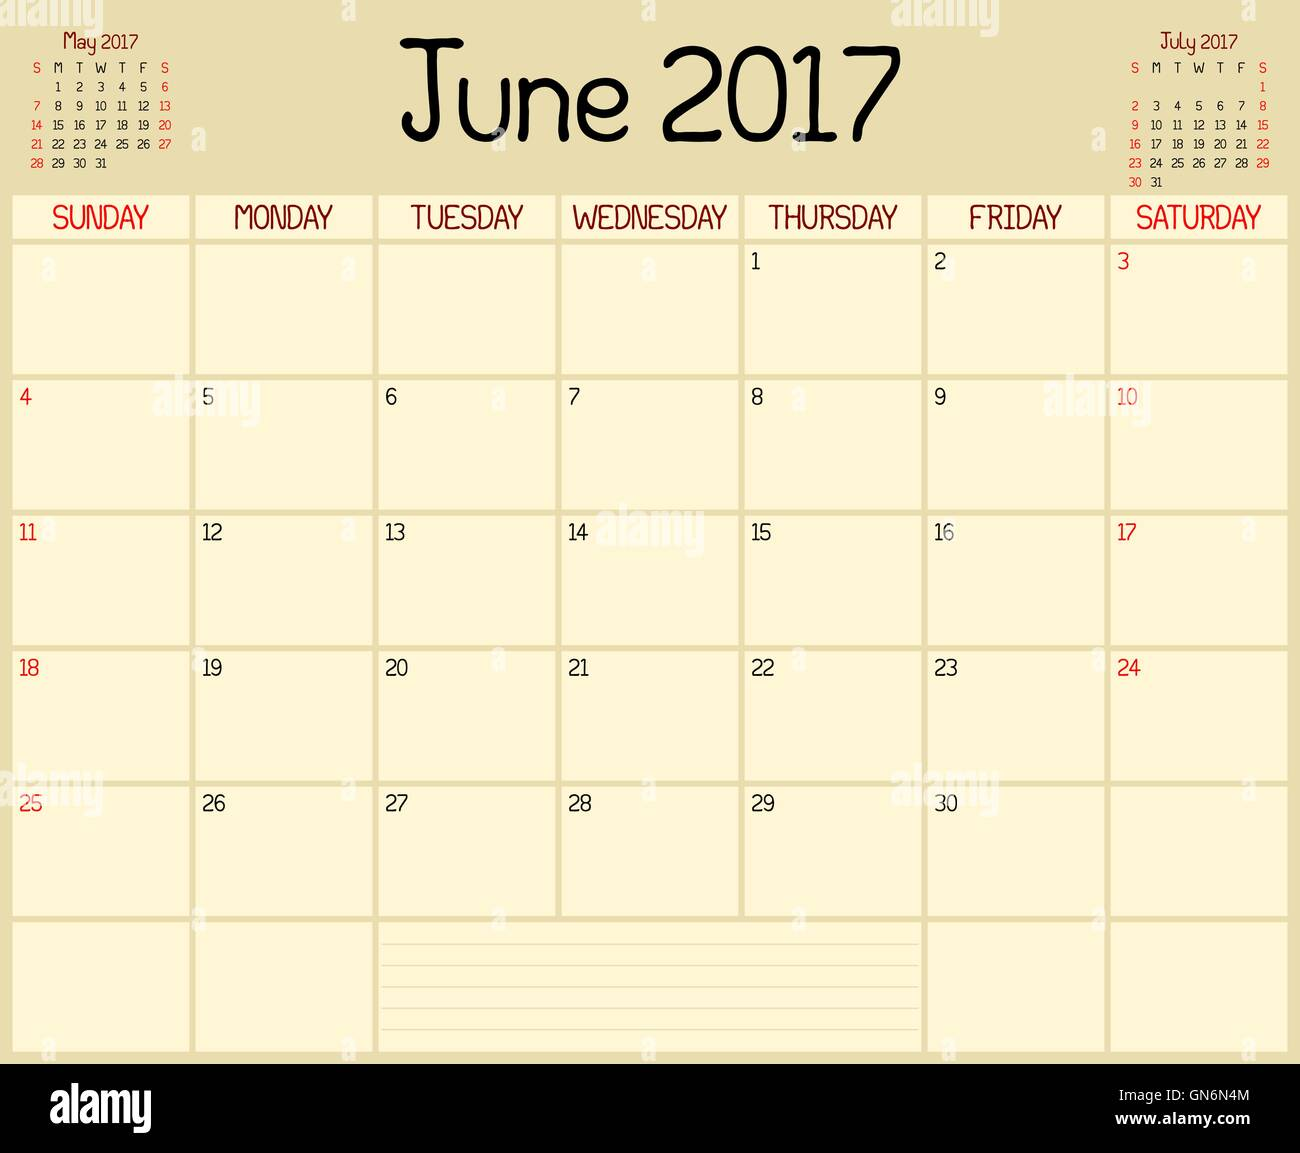 Daily Features Thursday June 8 2017: Organizer Plans Daily Stock Photos & Organizer Plans Daily